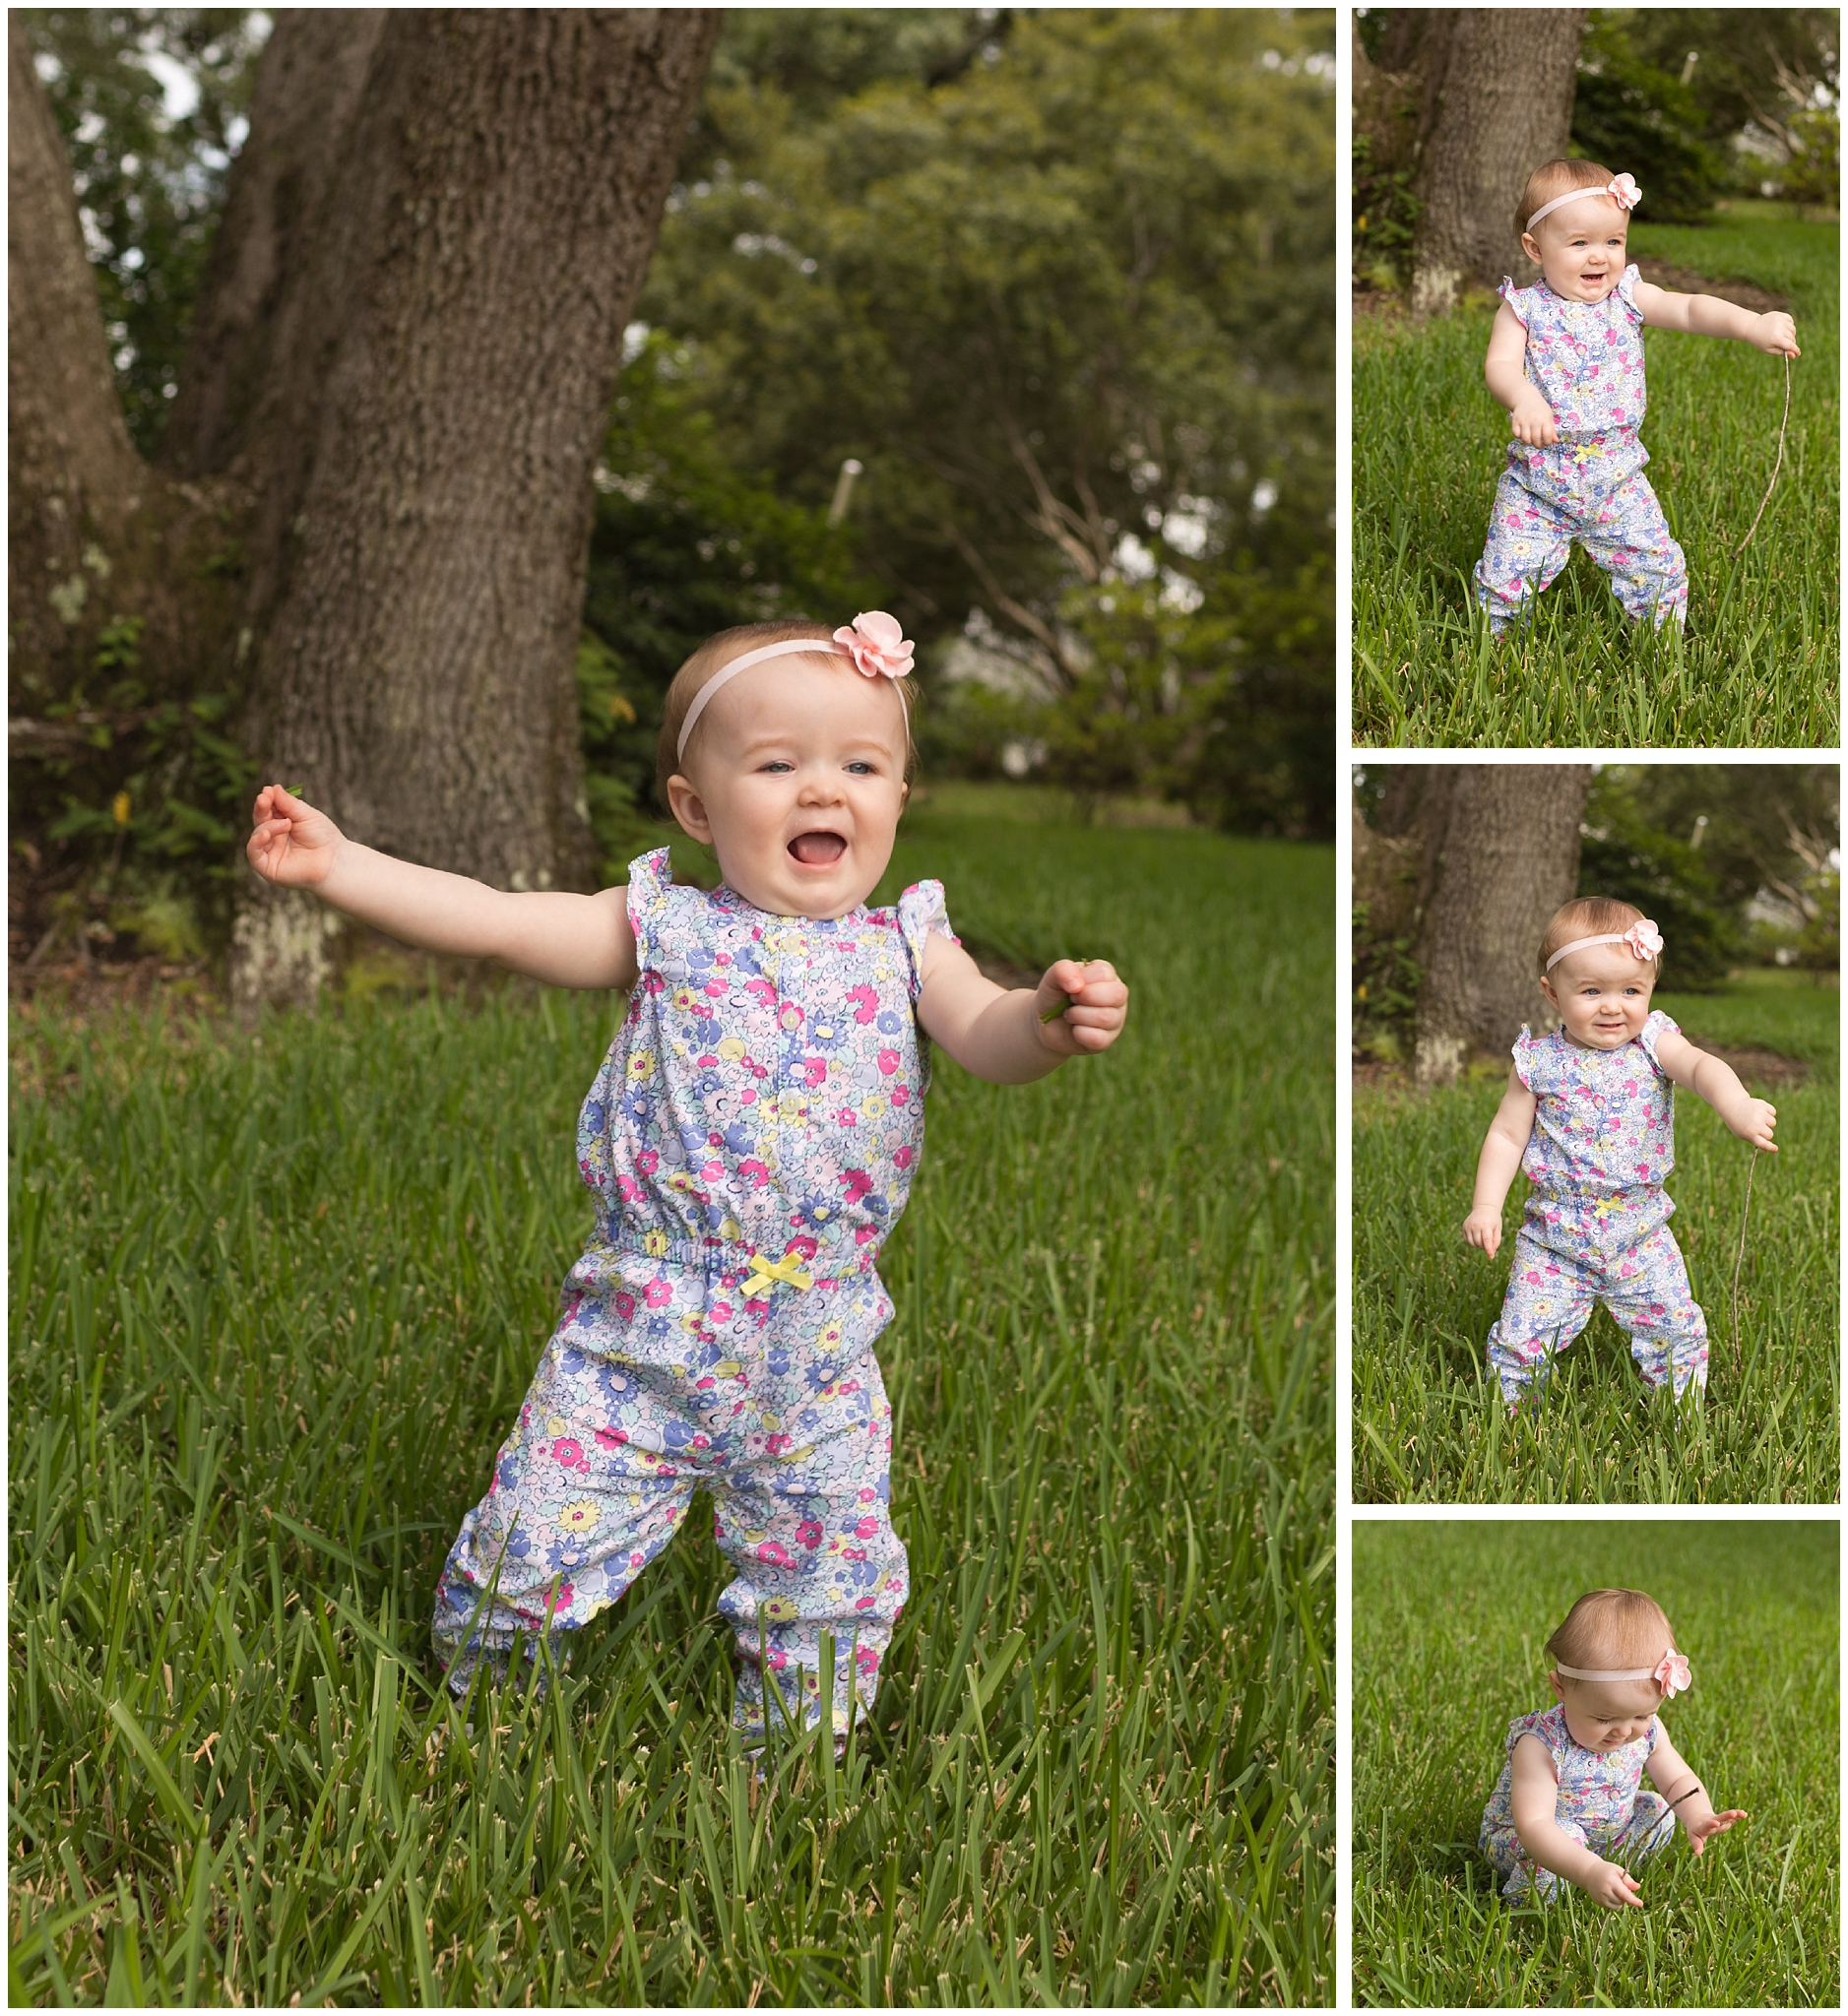 adorable baby girl in floral suit outside, playing with stick